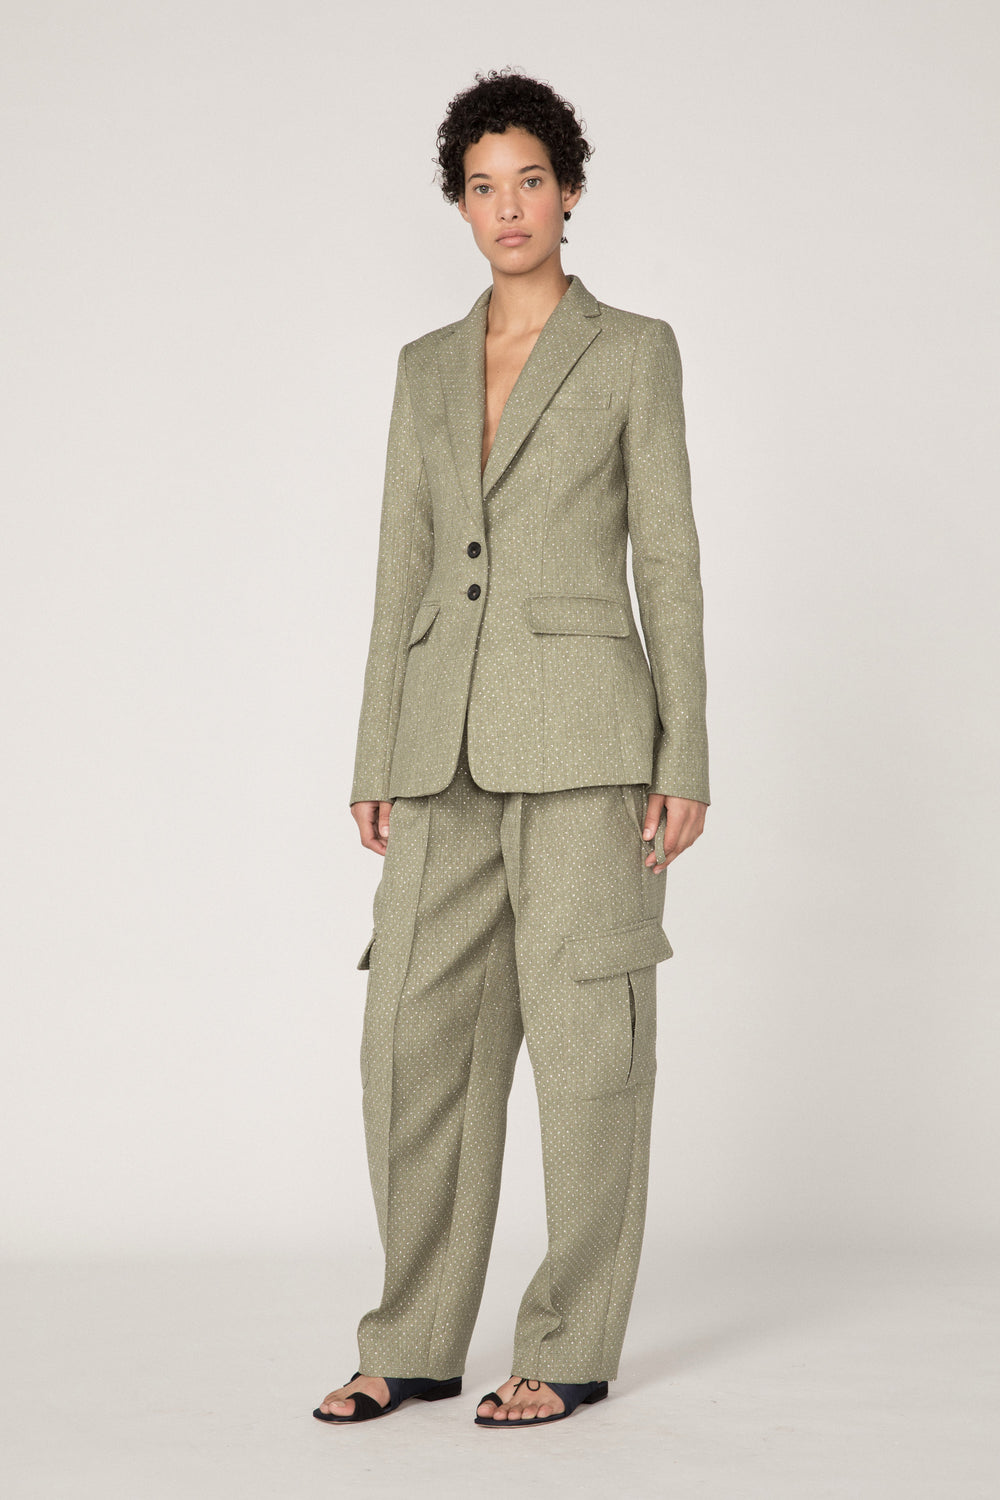 Rosie Assoulin Fall 2019 Classic Blazer. Classic tailored blazer. Two front buttons. Two flap patch pockets. Slight flare. Green. 66% Polyester, 34% Cotton. Sizes 0 - 12.